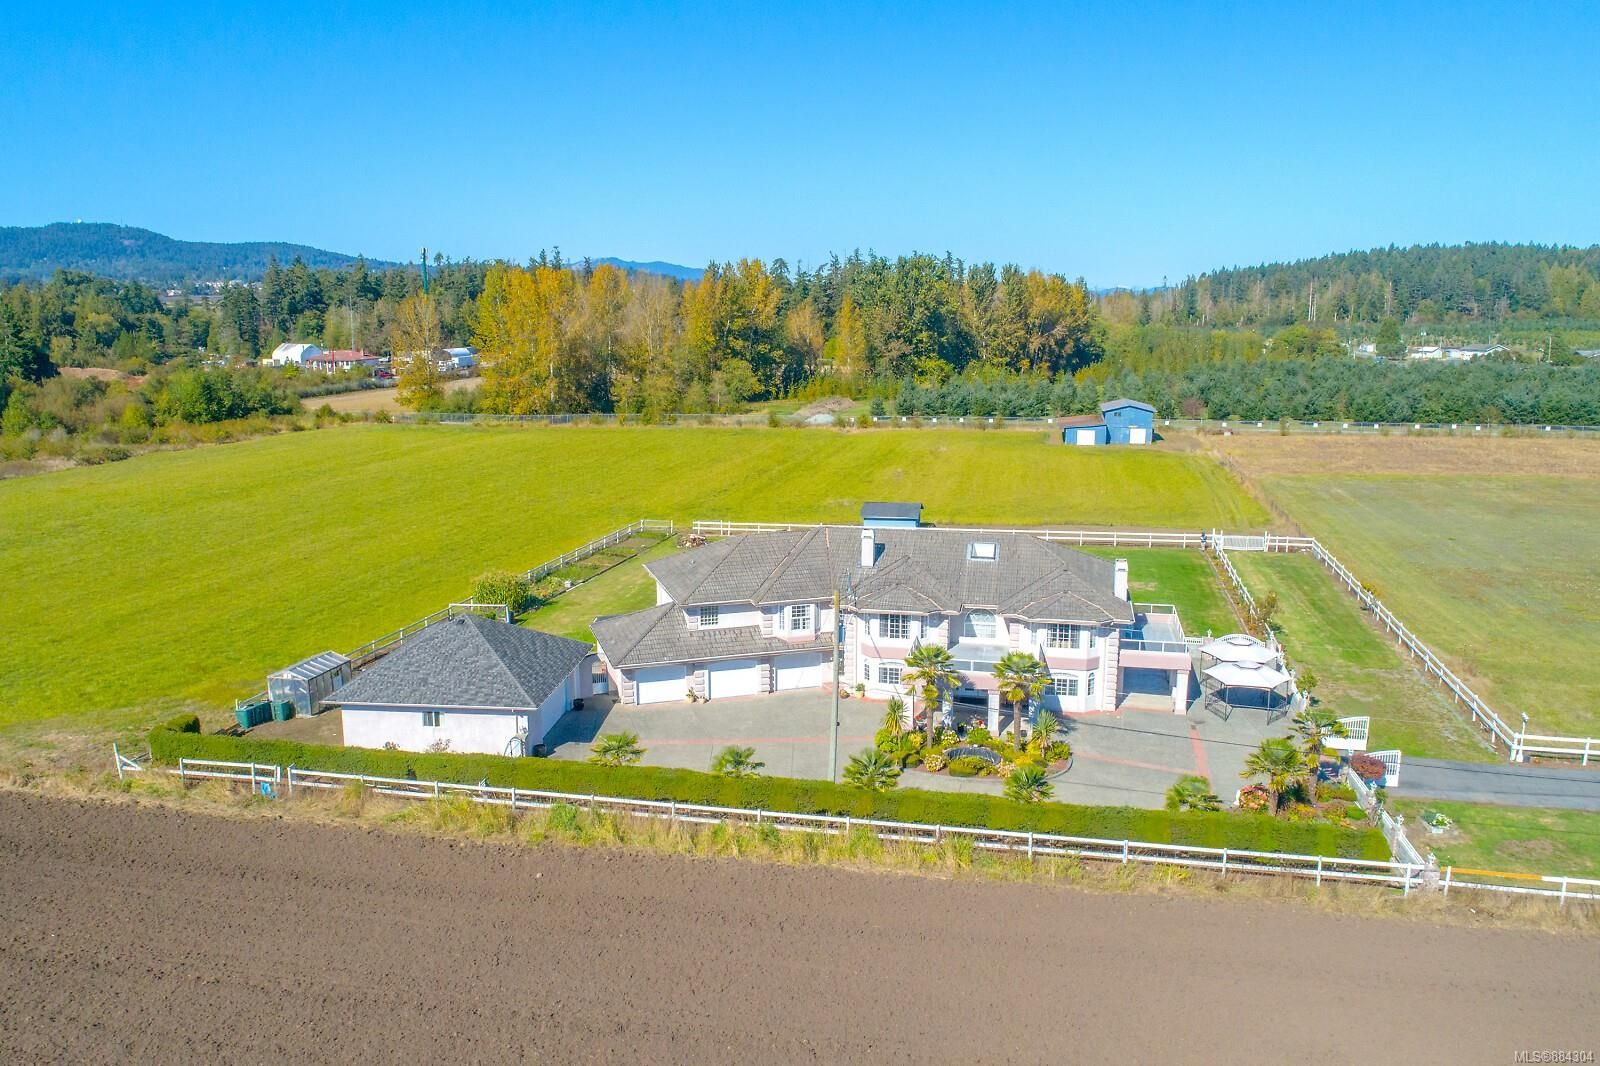 Main Photo: 7112 Puckle Rd in : CS Saanichton House for sale (Central Saanich)  : MLS®# 884304